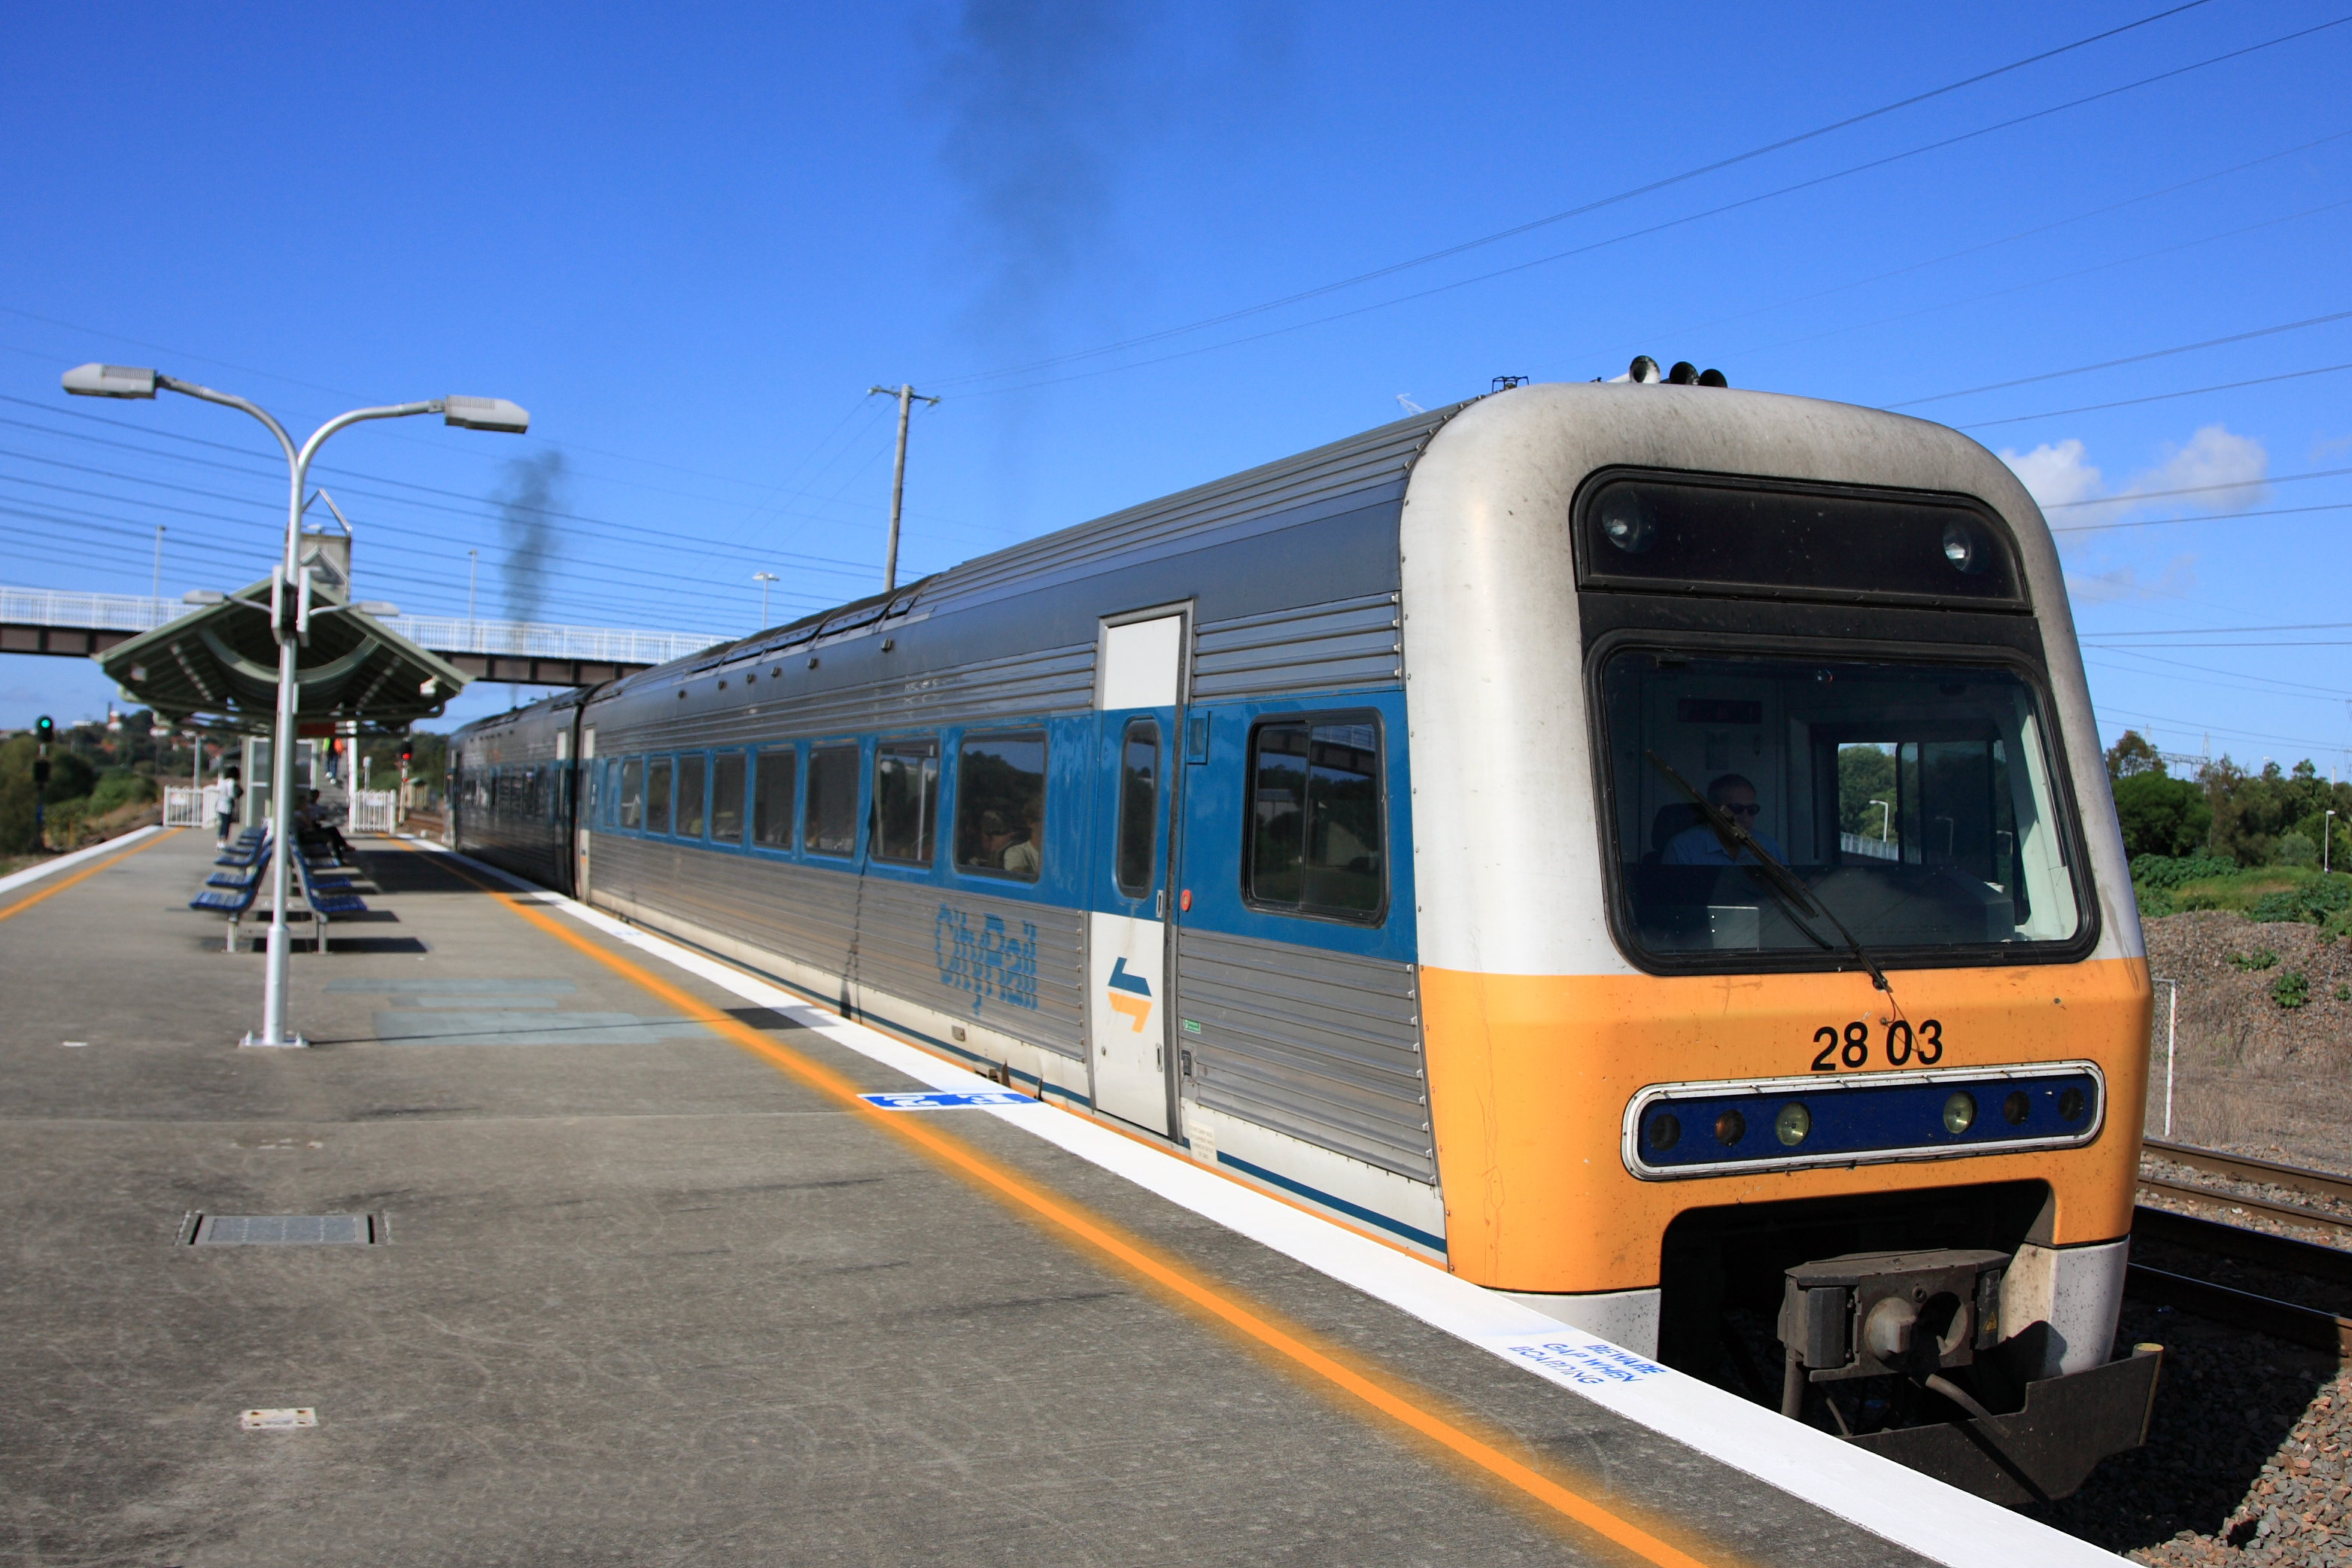 sydney trains media release template - photo#13